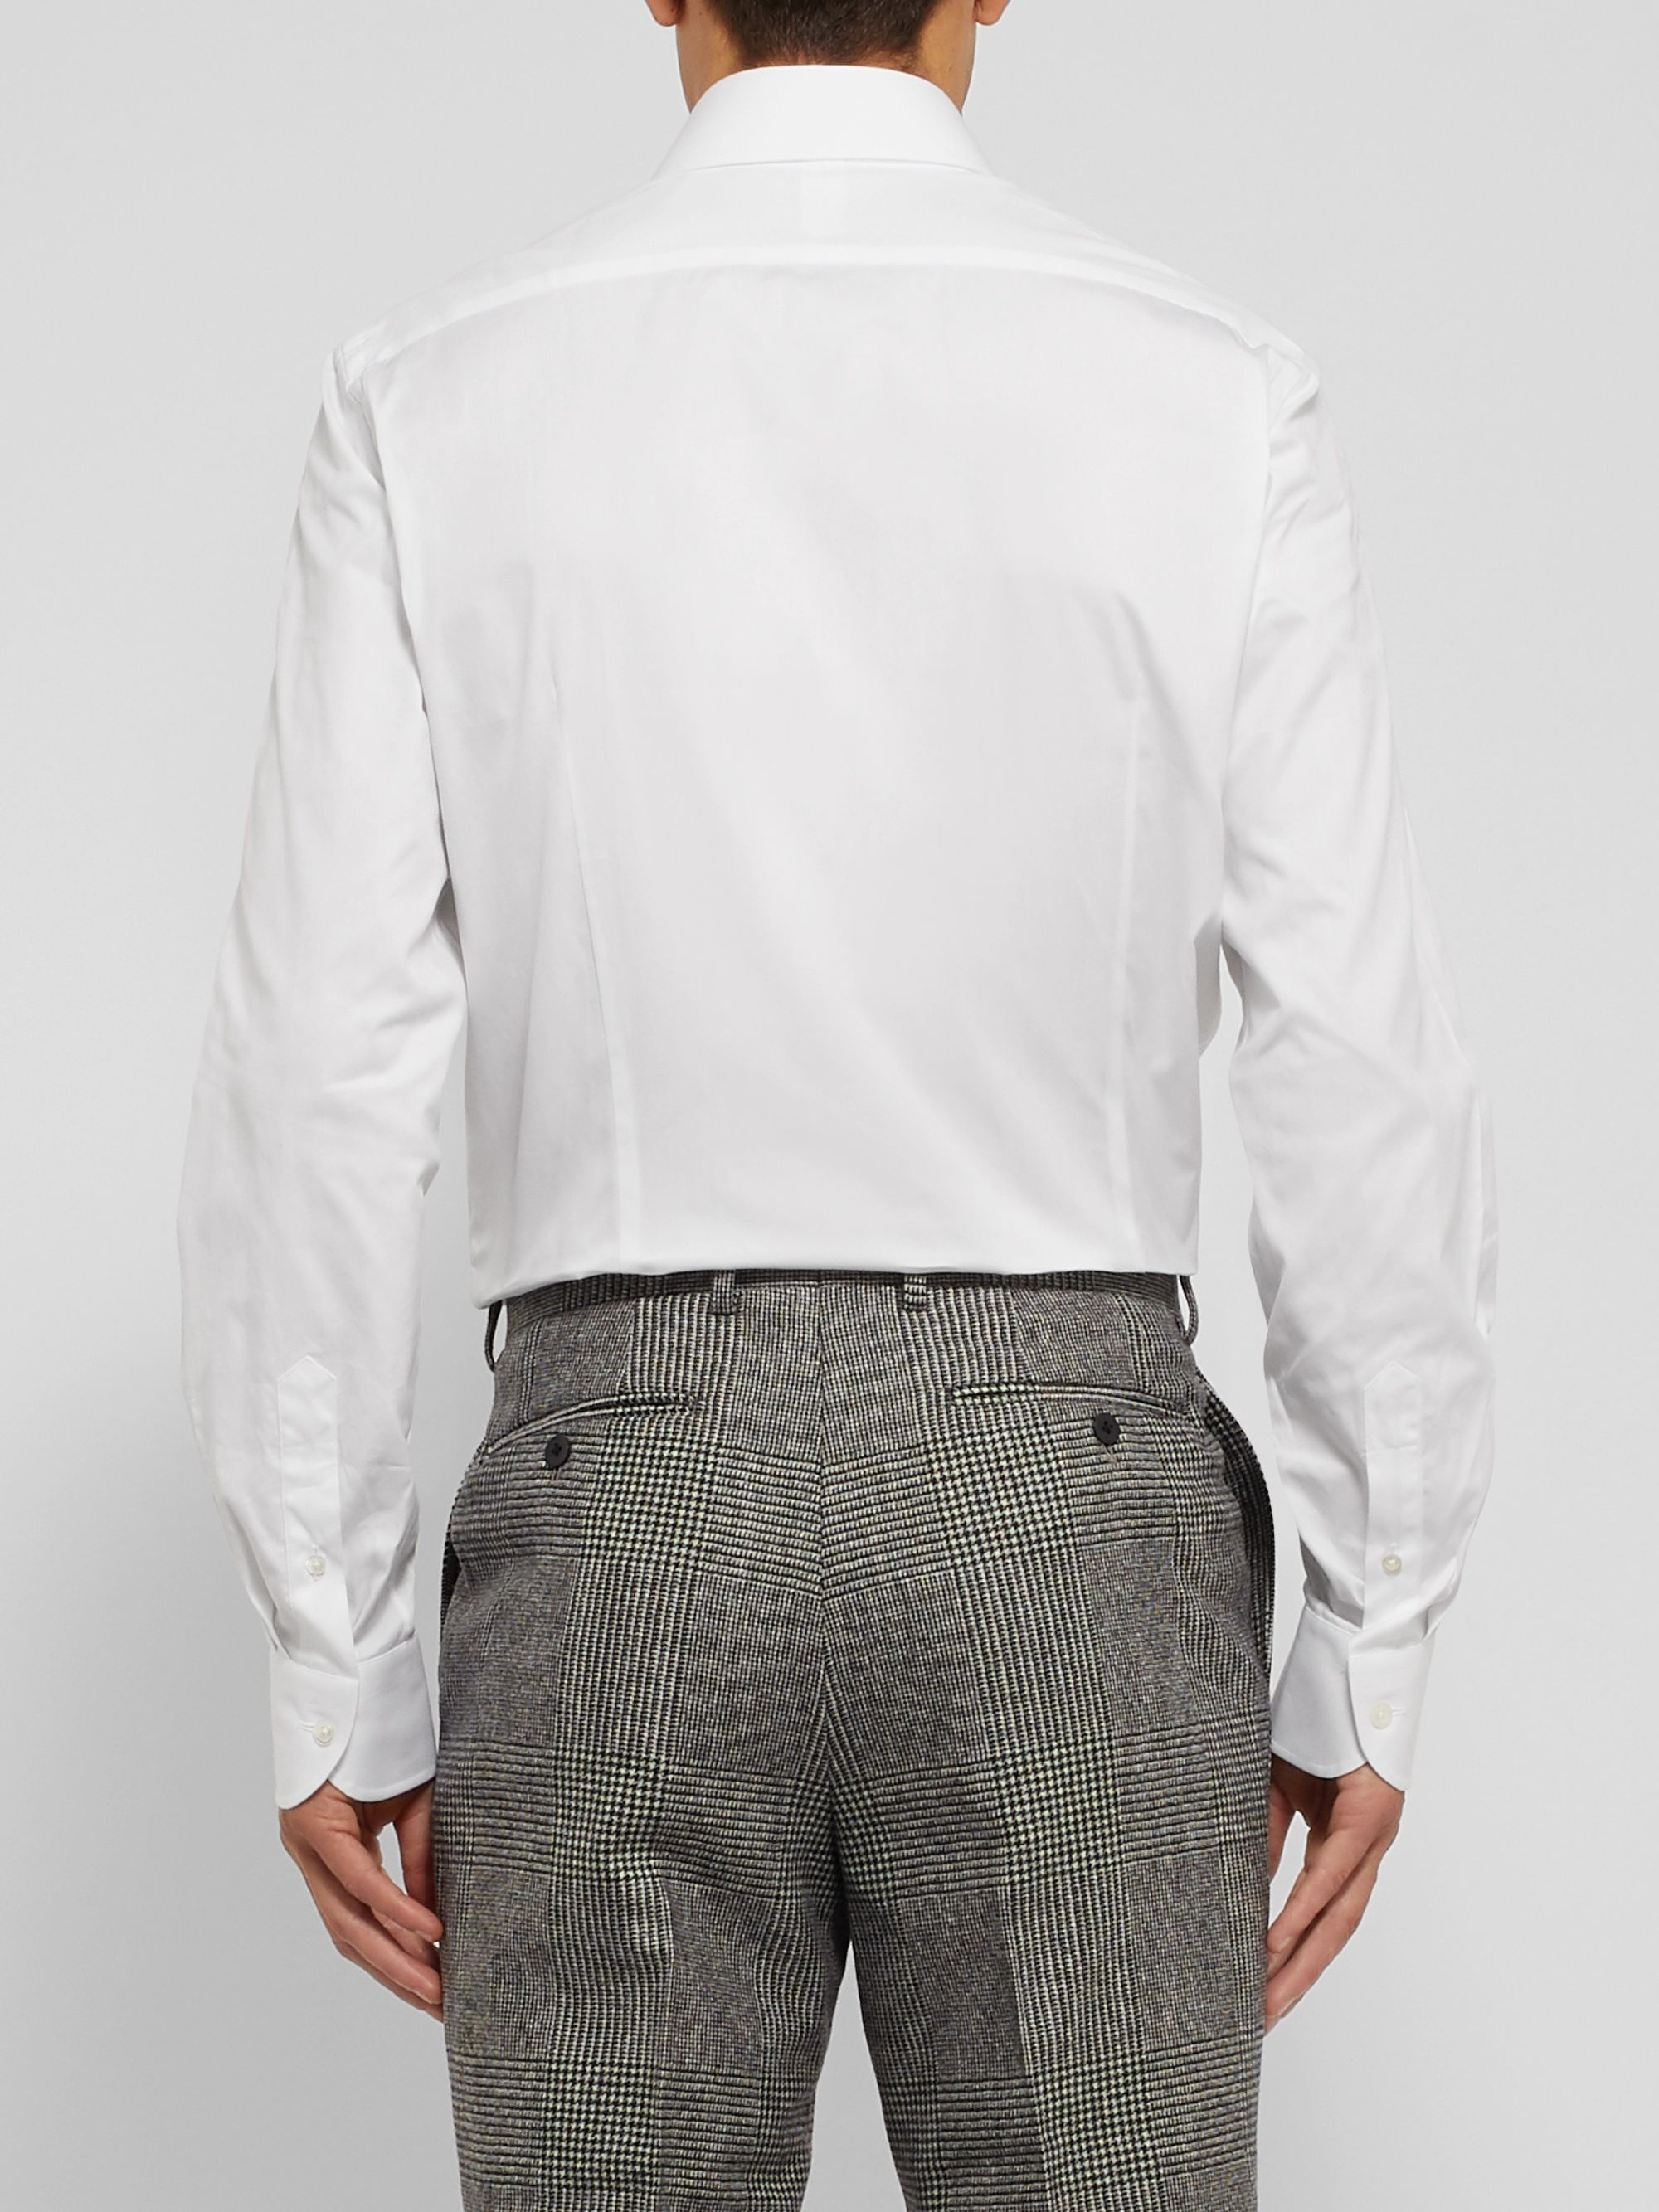 Beams F White Slim-Fit Cotton Oxford Shirt